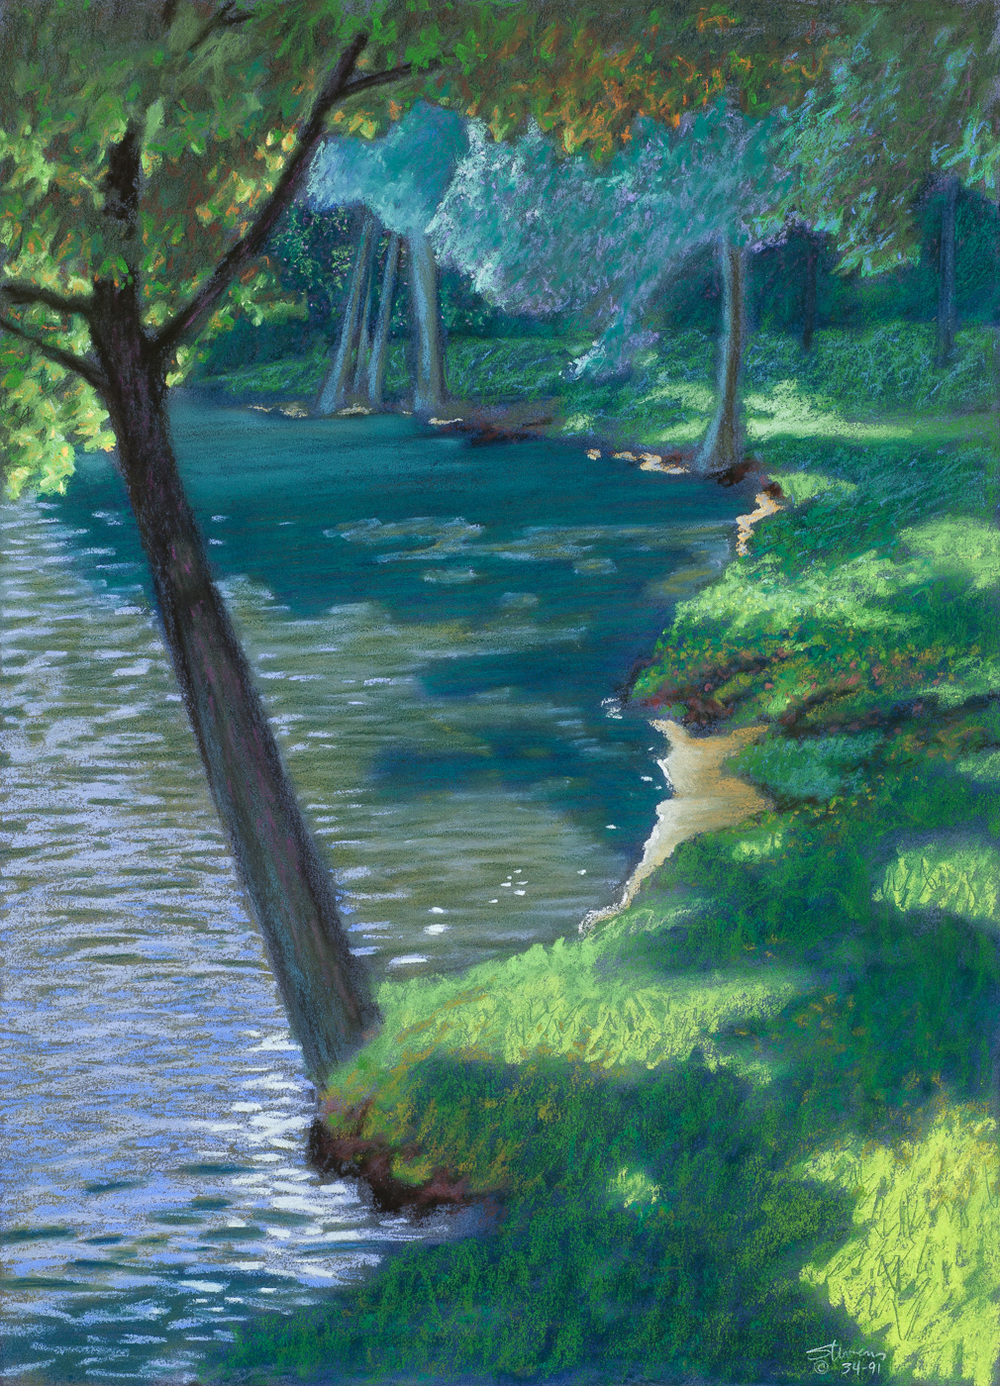 Crockery Lake Shore | pastel on paper | 21 x 15"